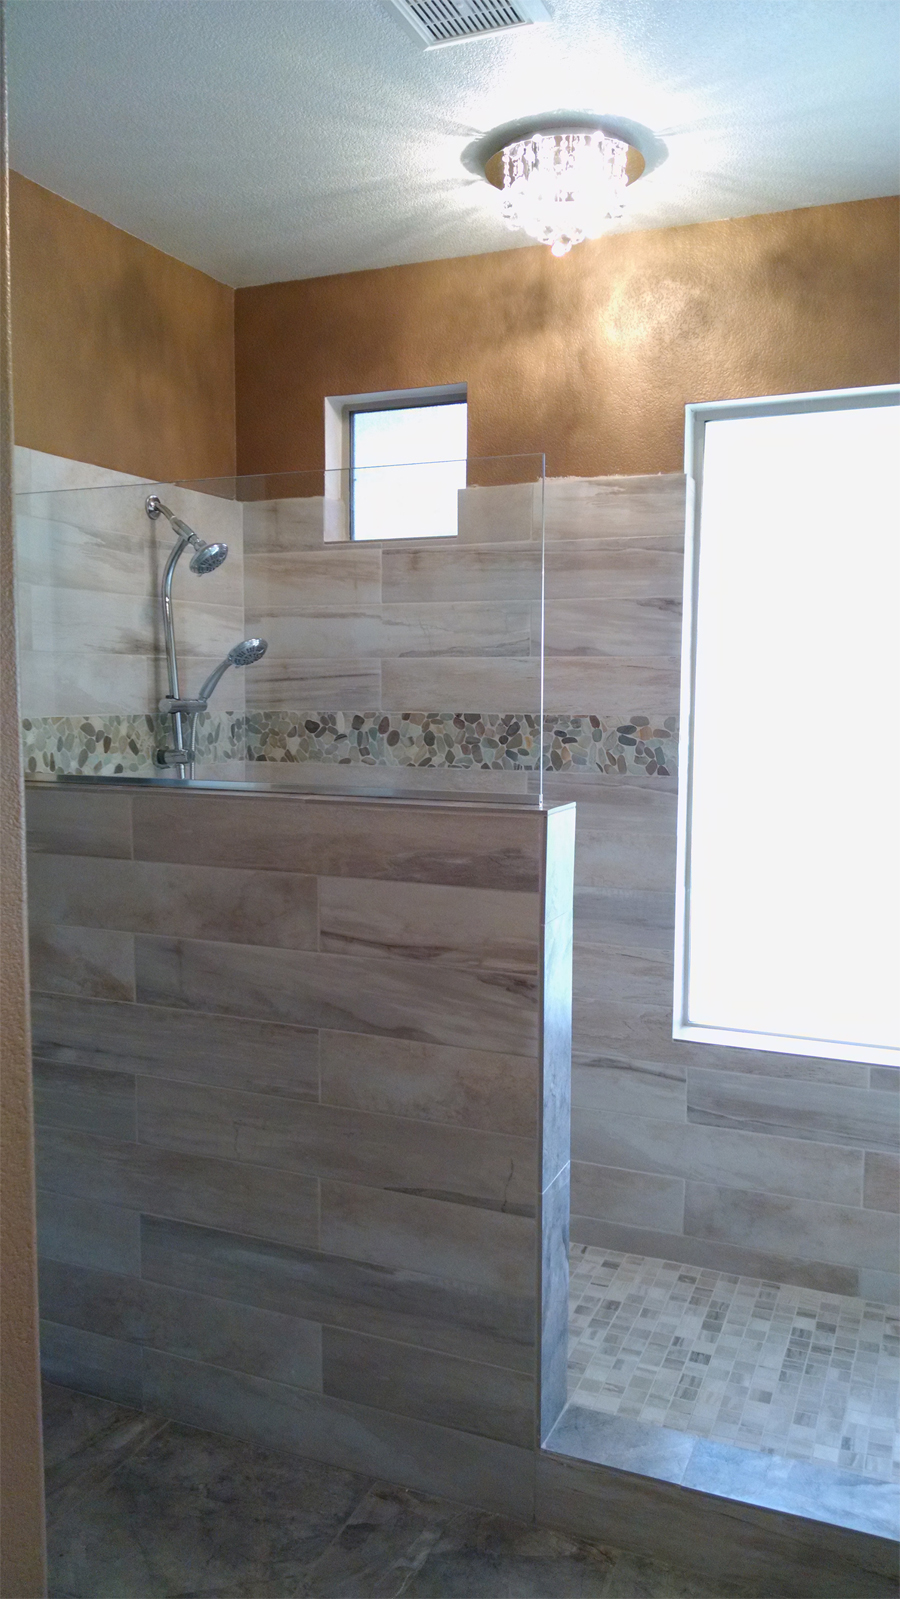 Phoenix Bathroom Remodel Endearing Home Remodeling Phoenix  Champion Remodeling Llc. Design Ideas